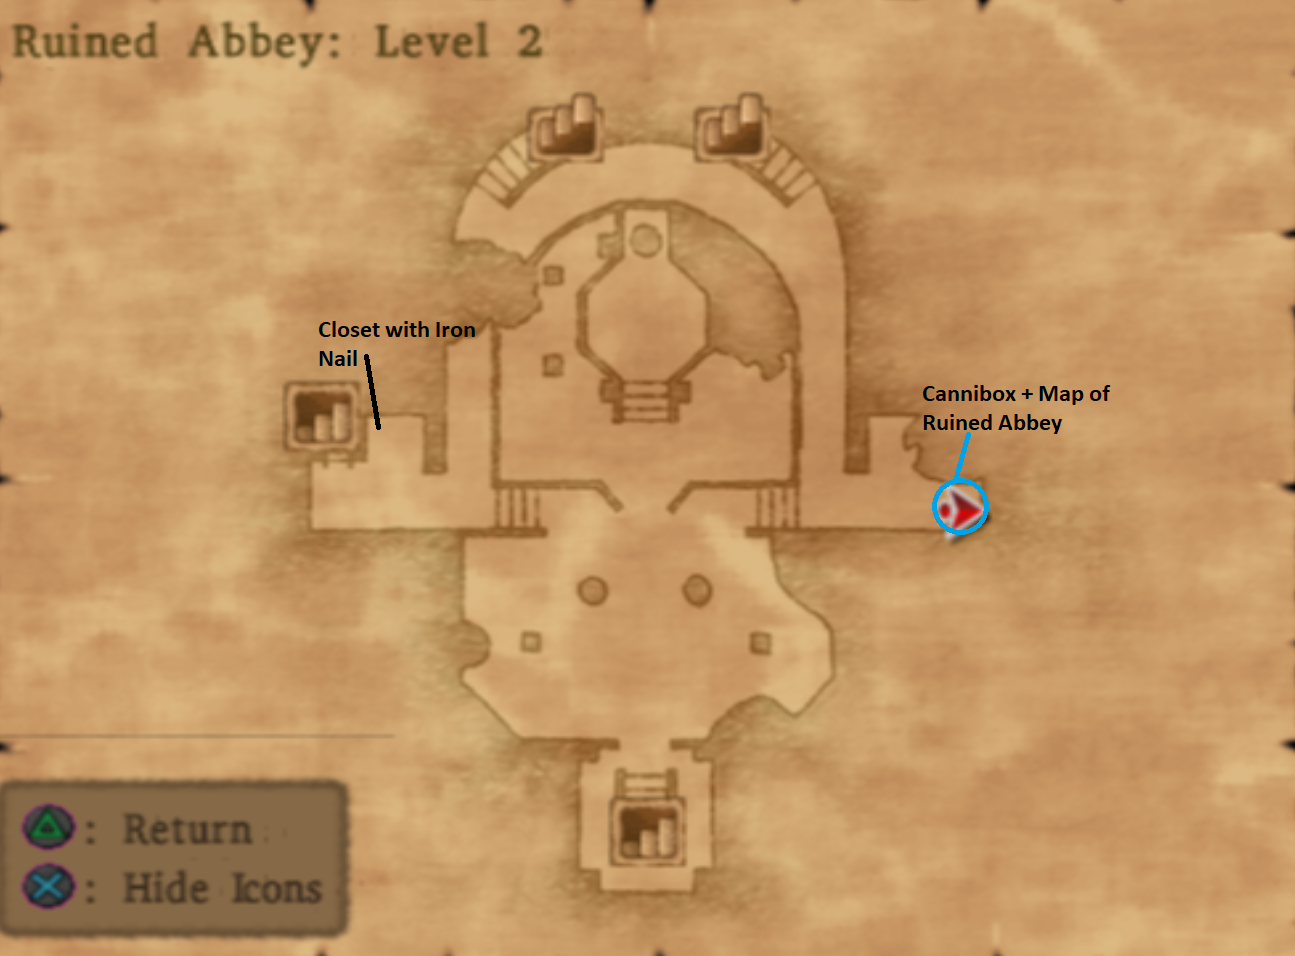 Map of Ruined Abbey Level 2